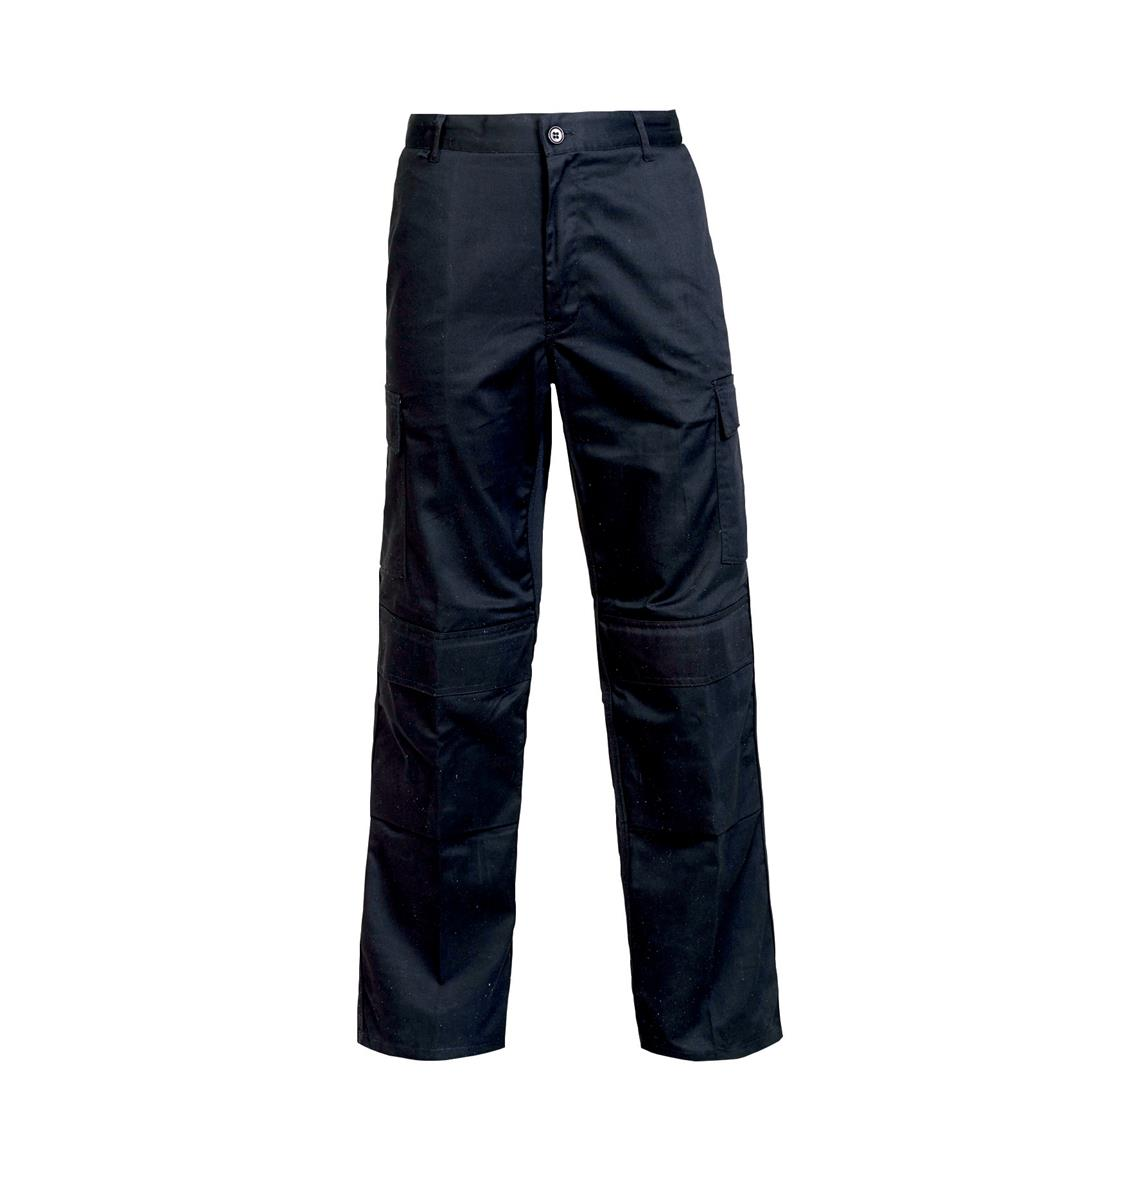 Supertouch Combat Trousers with Pockets Tall 40inch Black (Pack of 1)